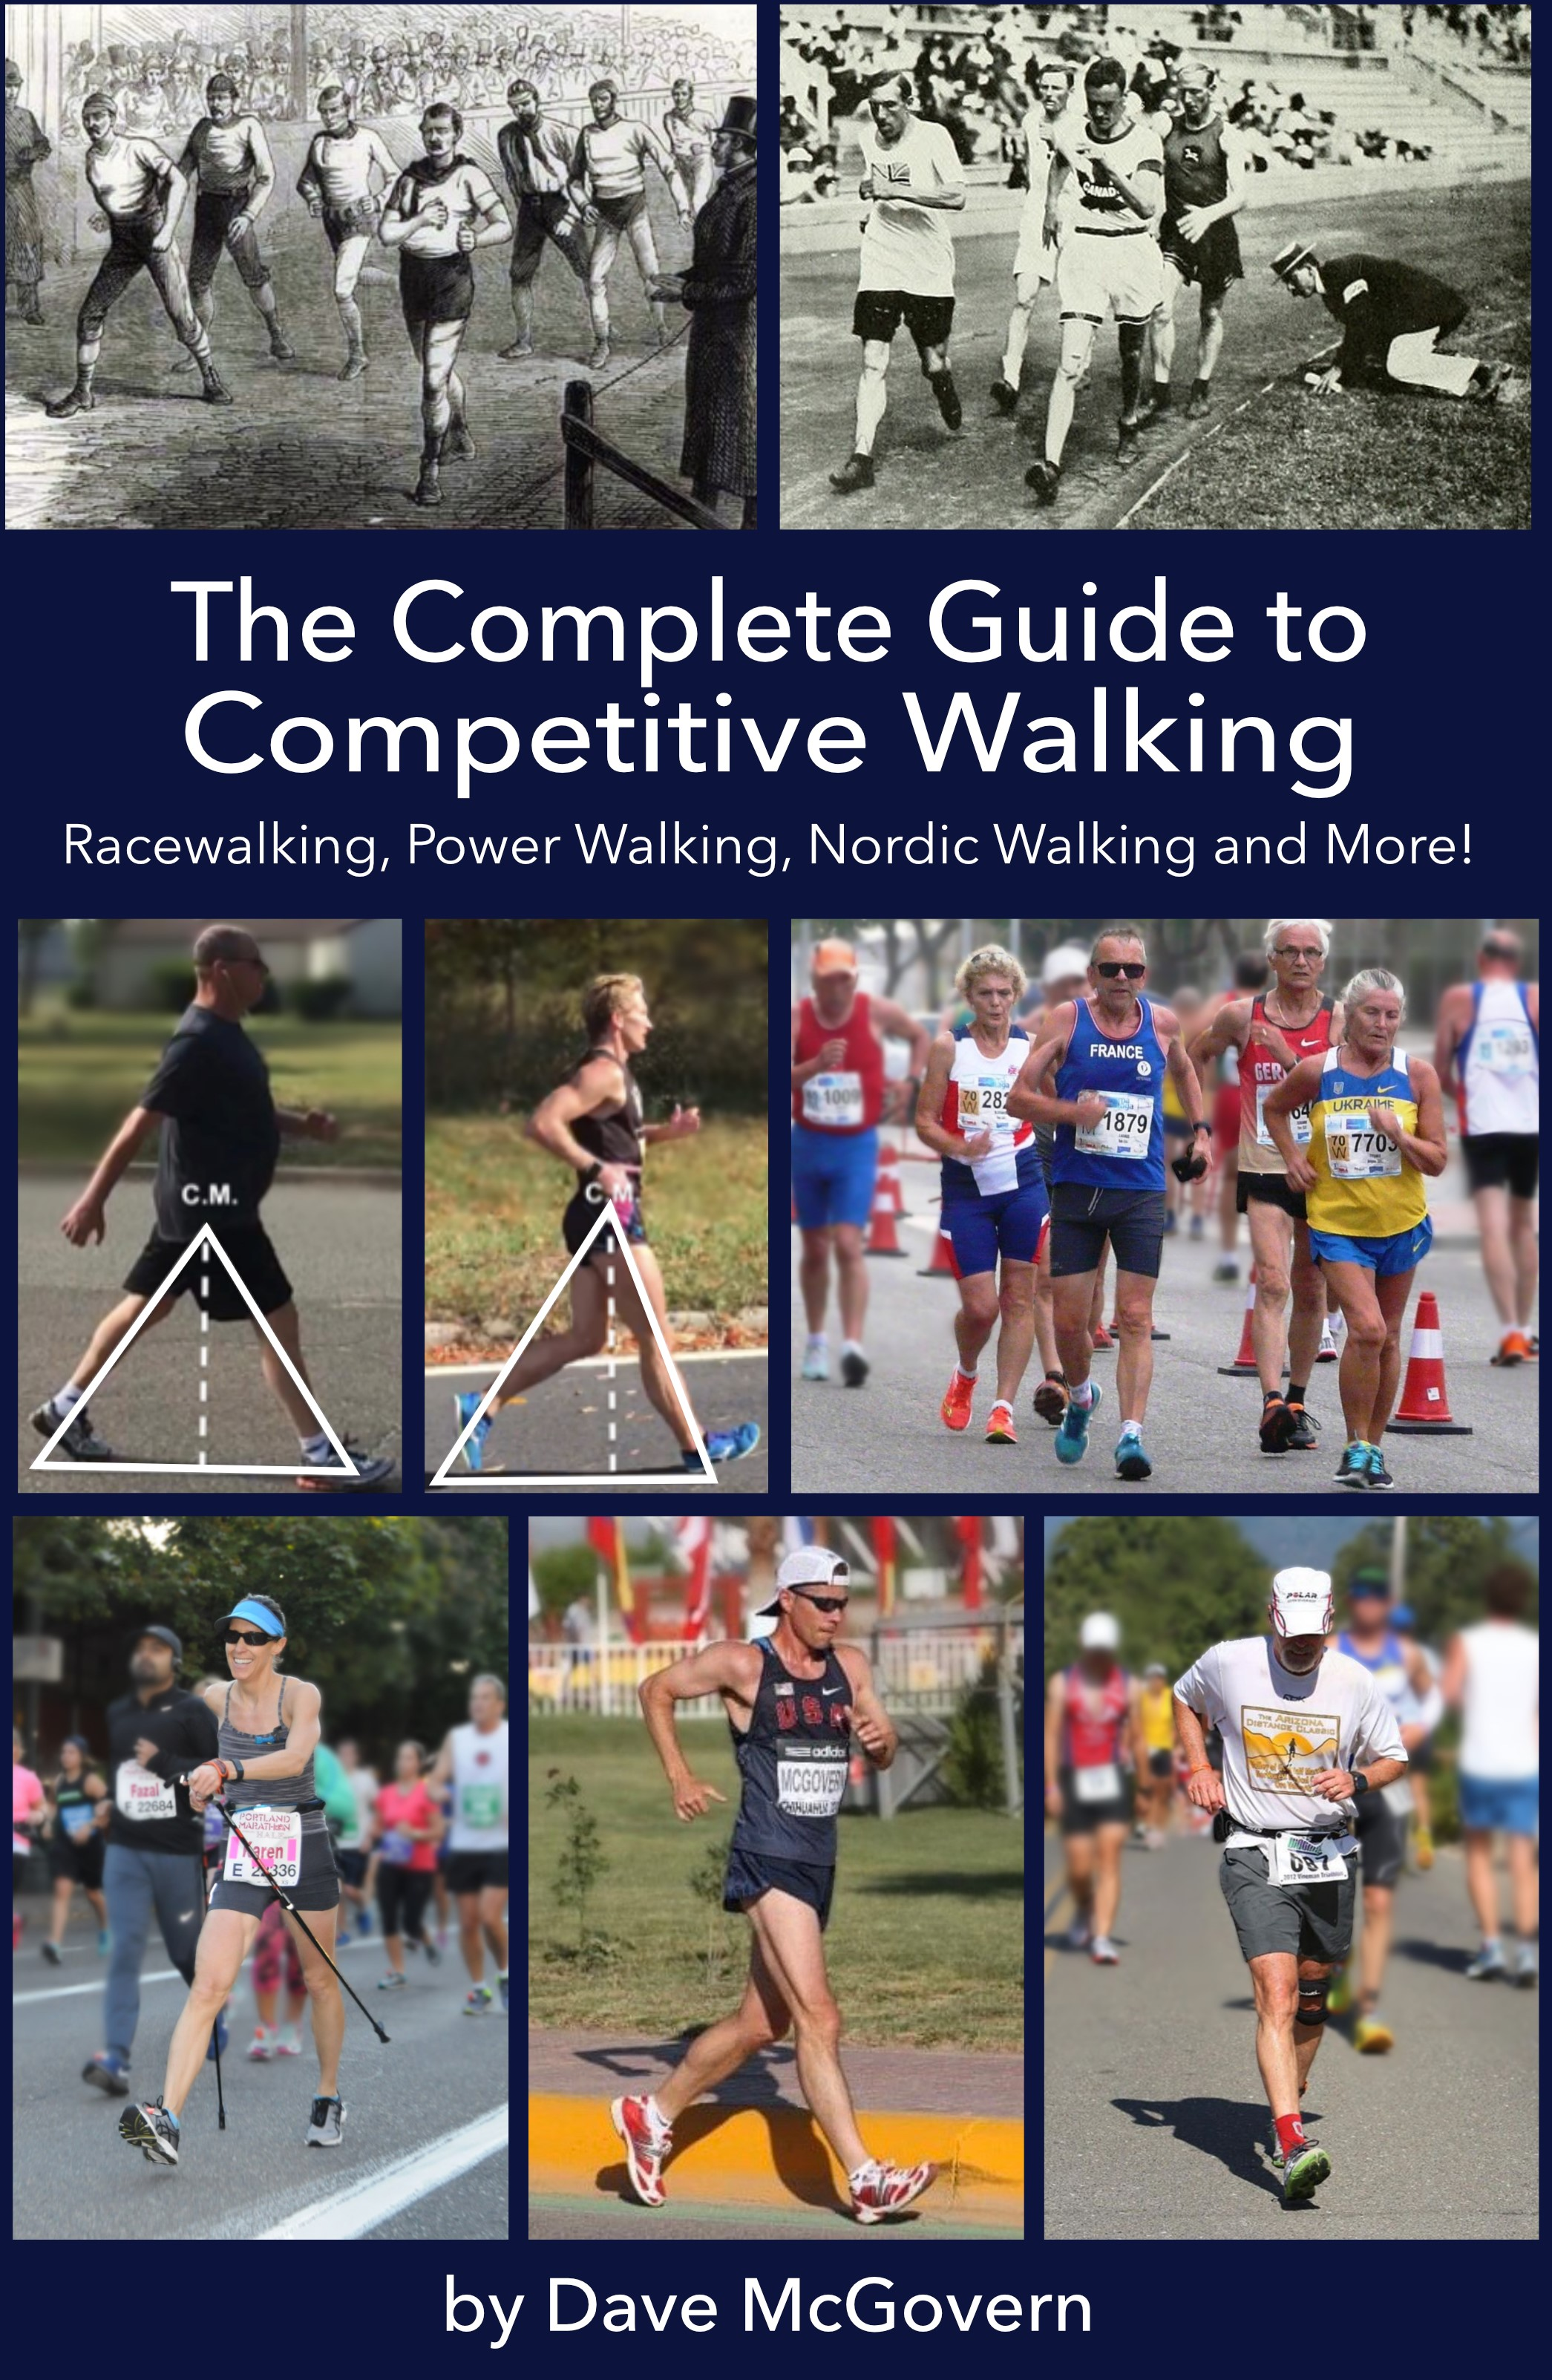 The Complete Guide to Competitive Walking – Book Review